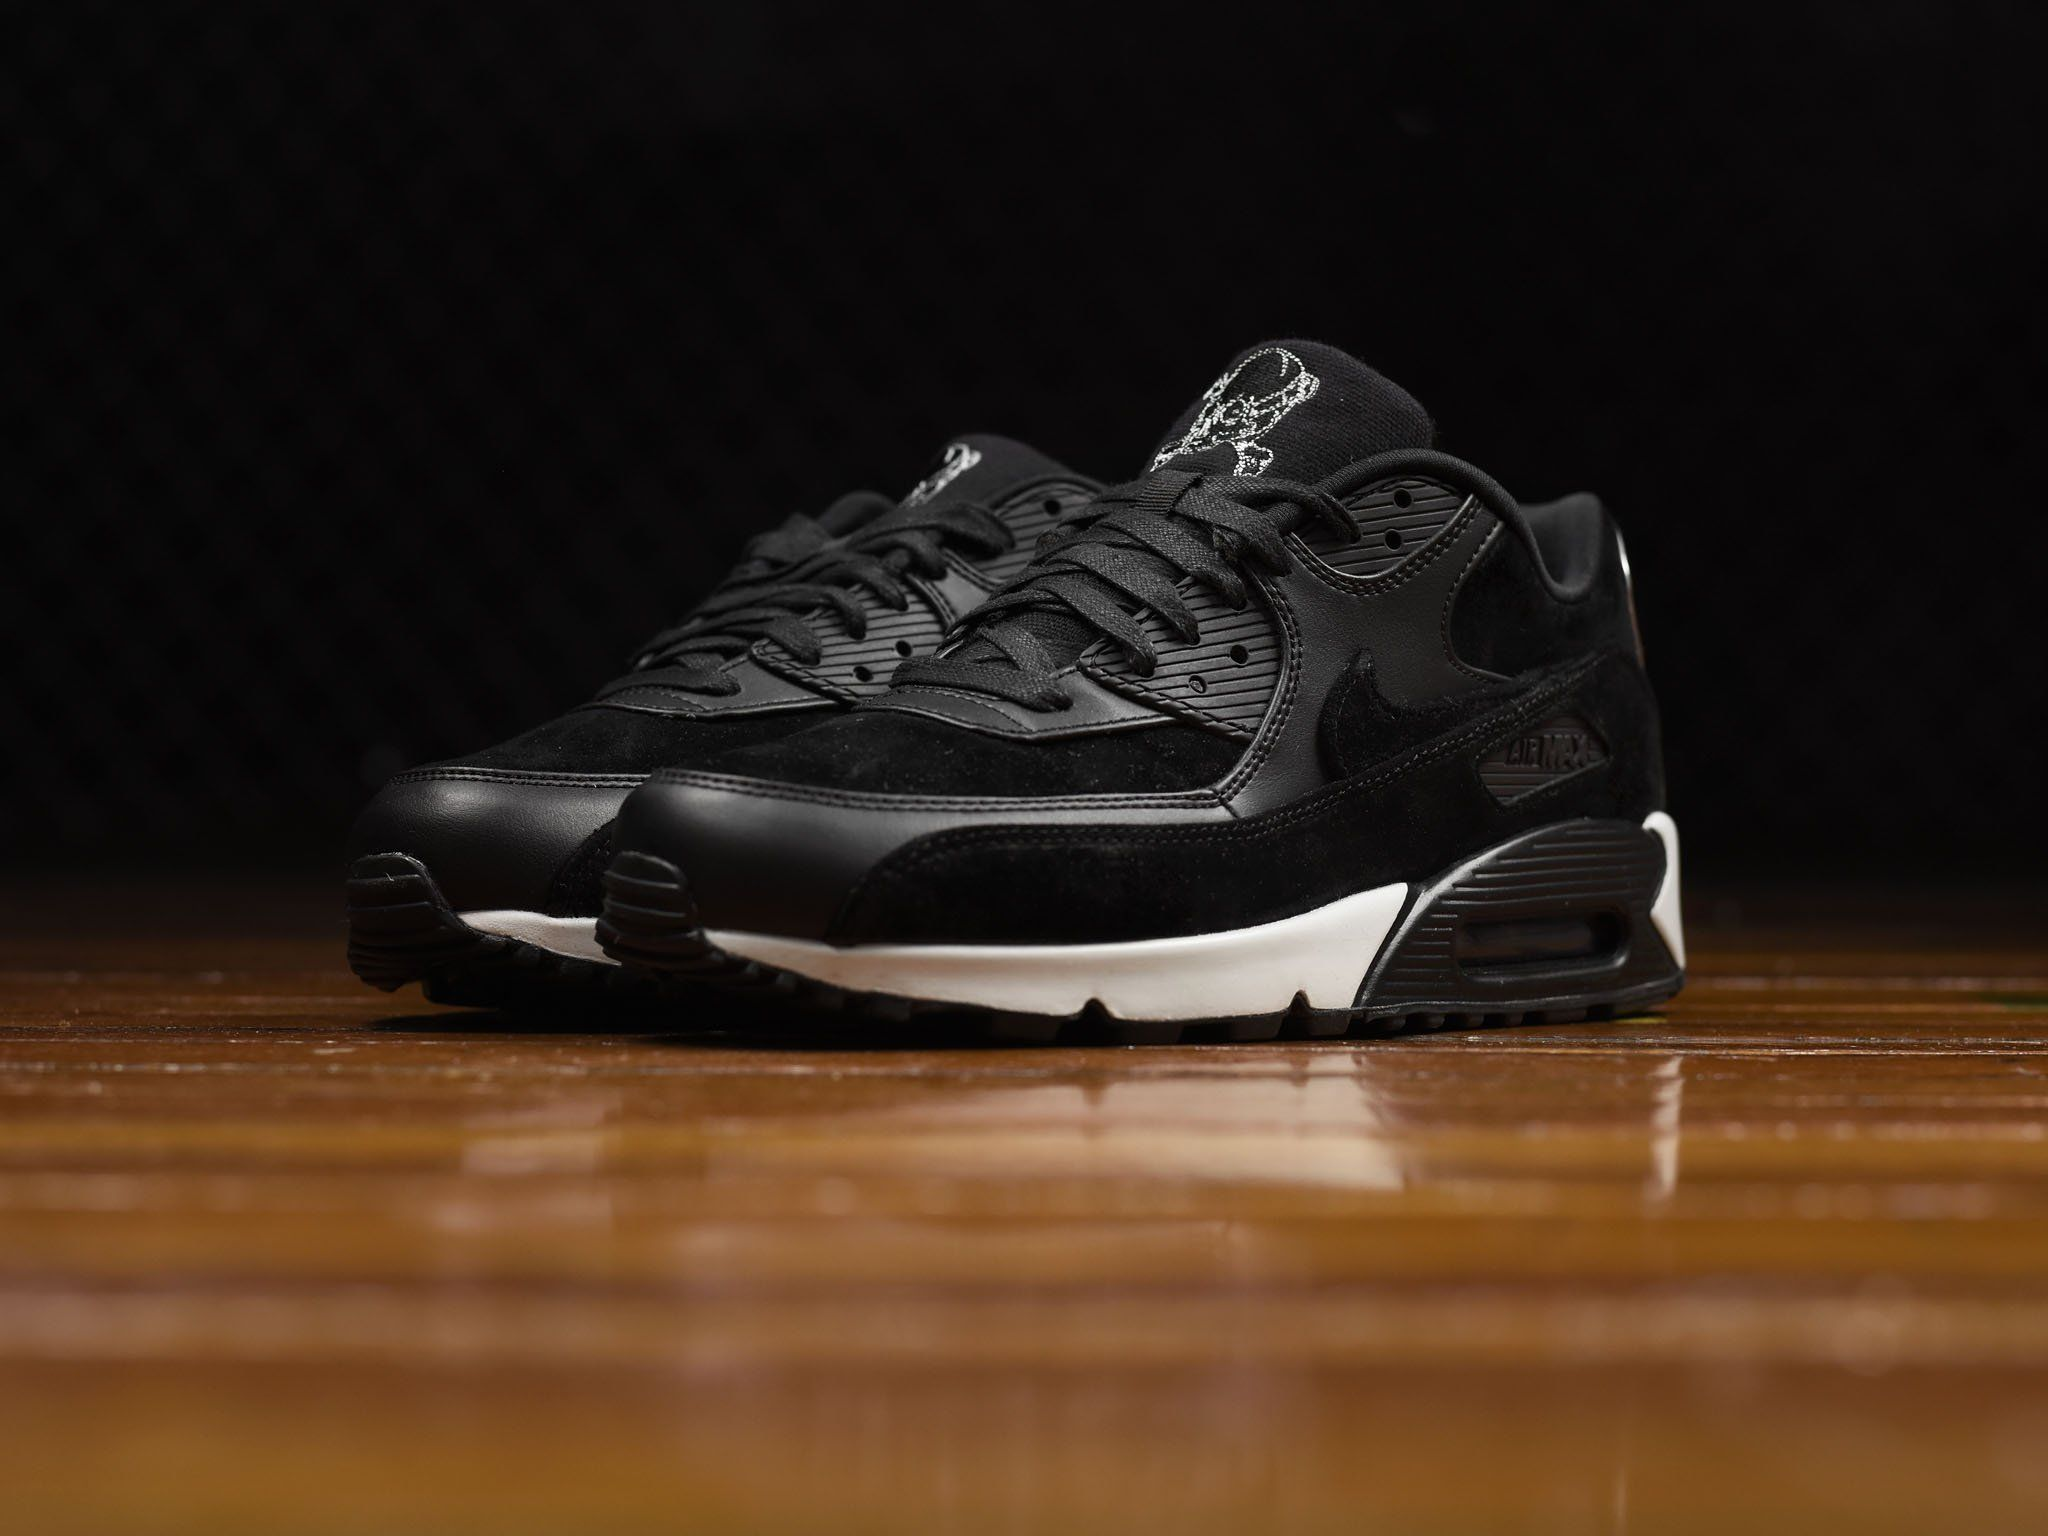 Nike Air Max 90 Premium shoes outsole wraps up Men light bonestring  lifestyle retro OSBCSZM